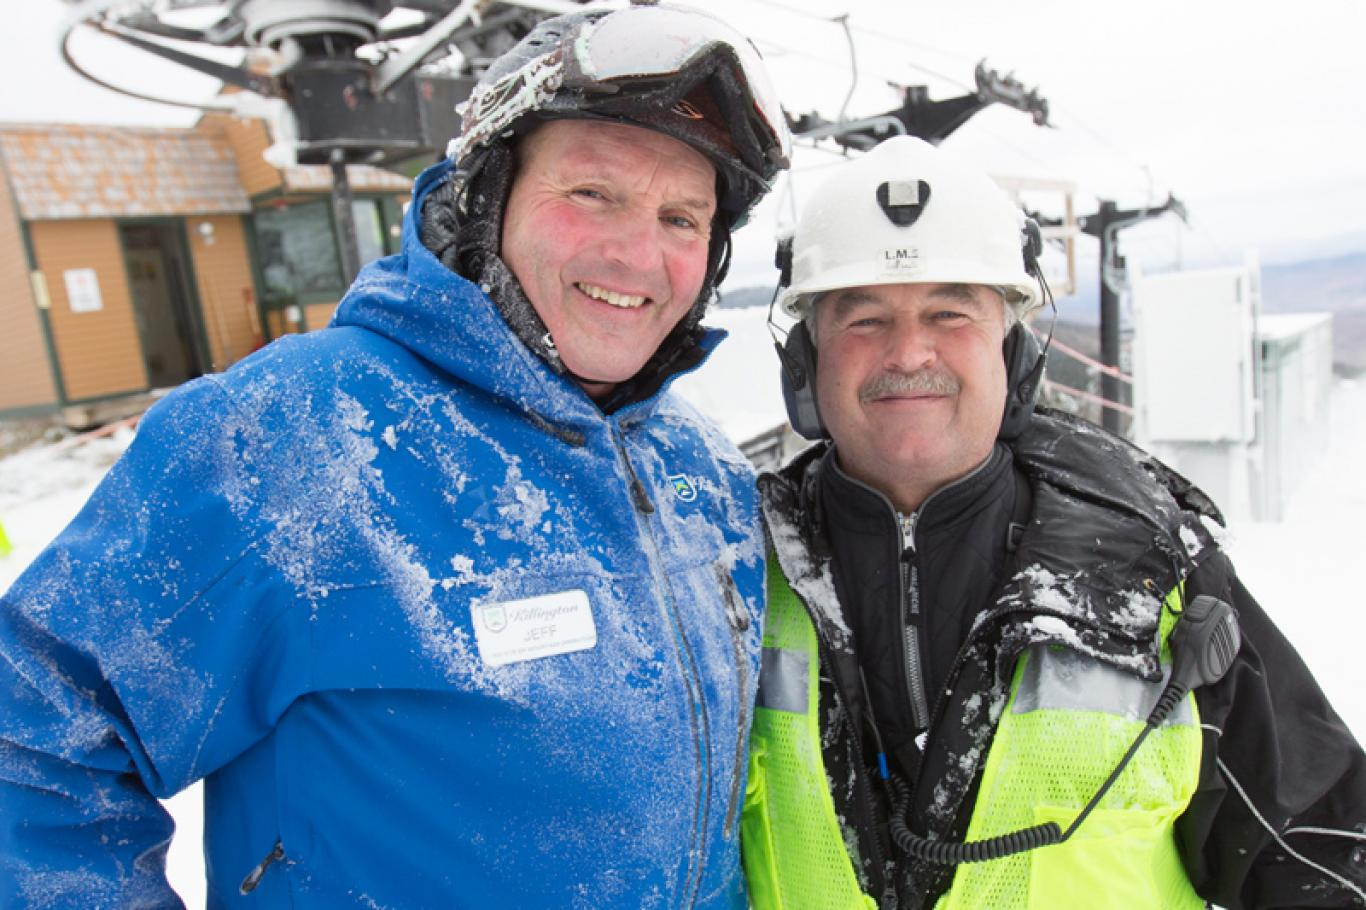 working at killington ski resort - why work at killington?